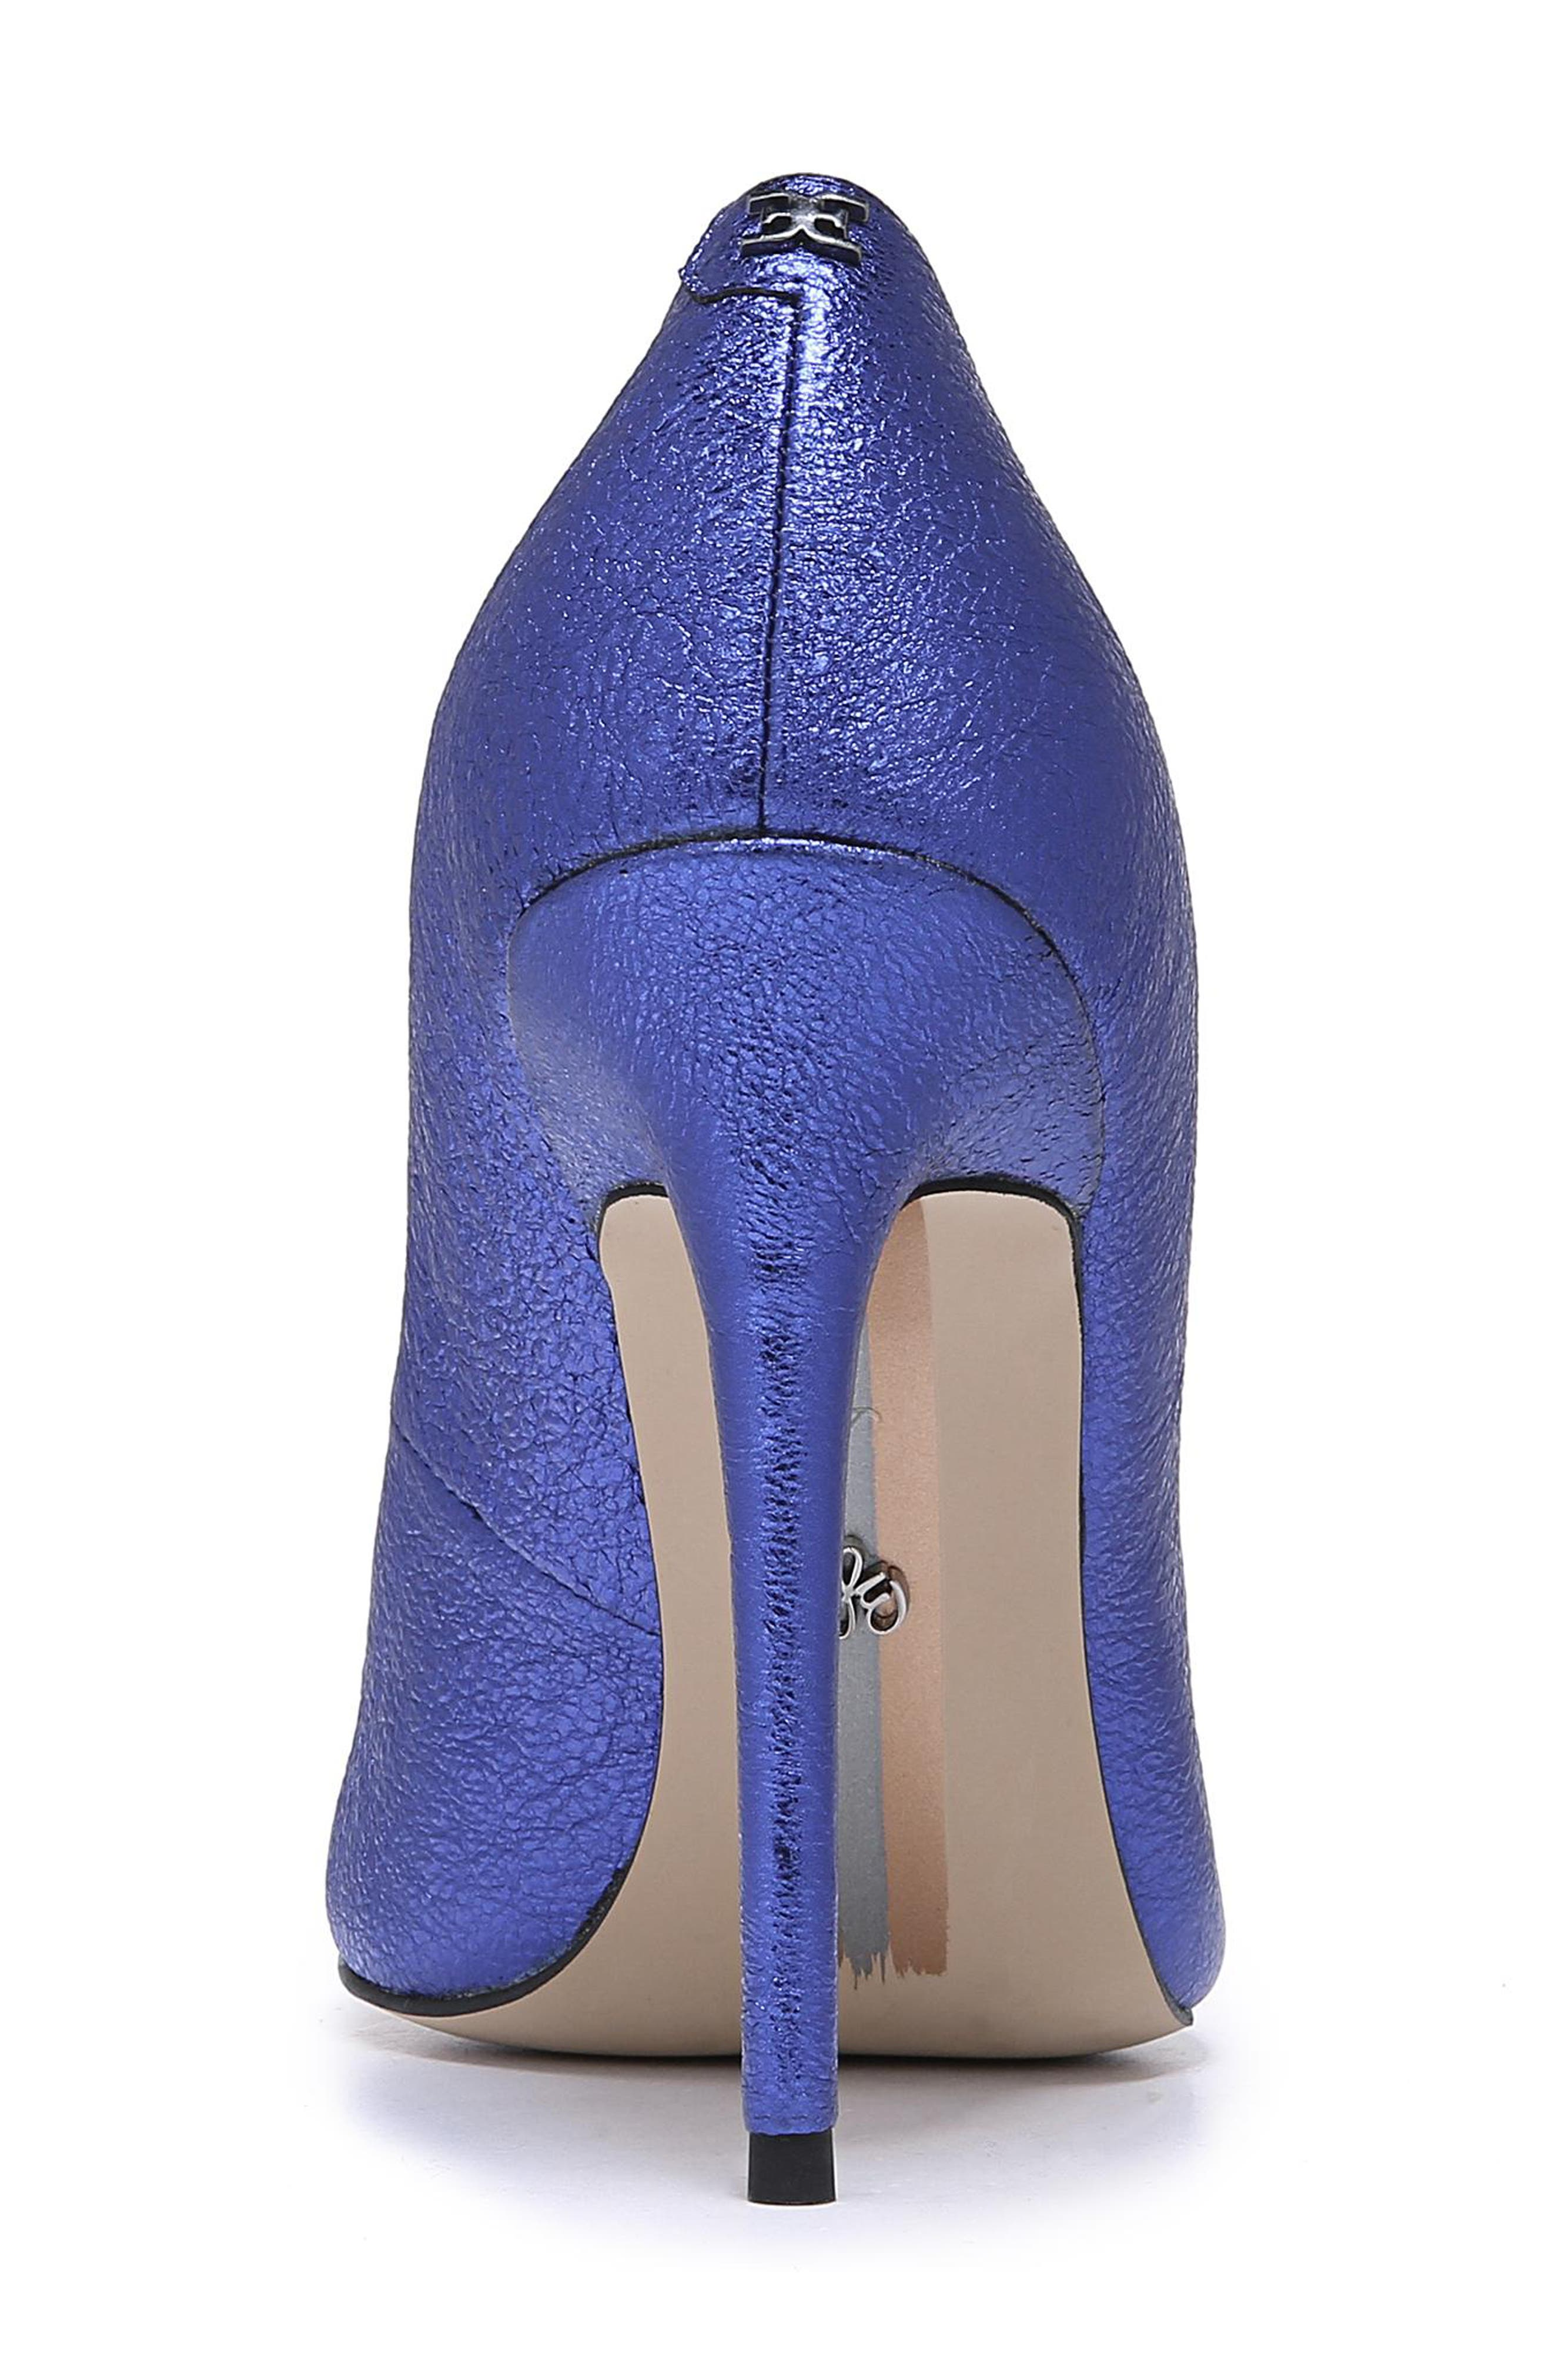 Danna Pointy Toe Pump,                             Alternate thumbnail 7, color,                             ROYAL BLUE LEATHER